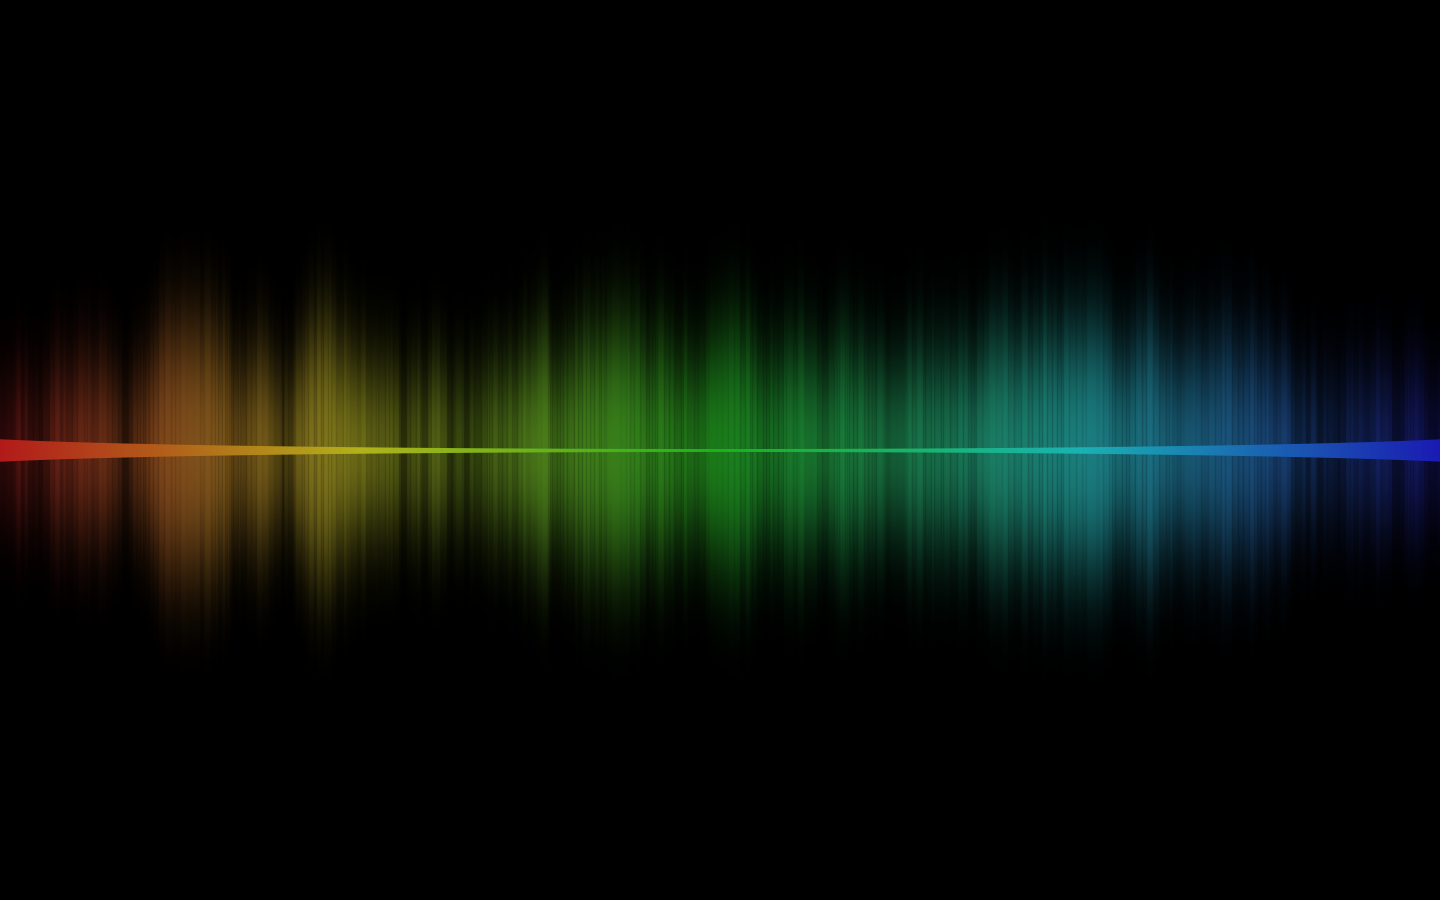 Must see Wallpaper Music Frequency - wallpaper-10612-10982-hd-wallpapers  Graphic_467382.jpg